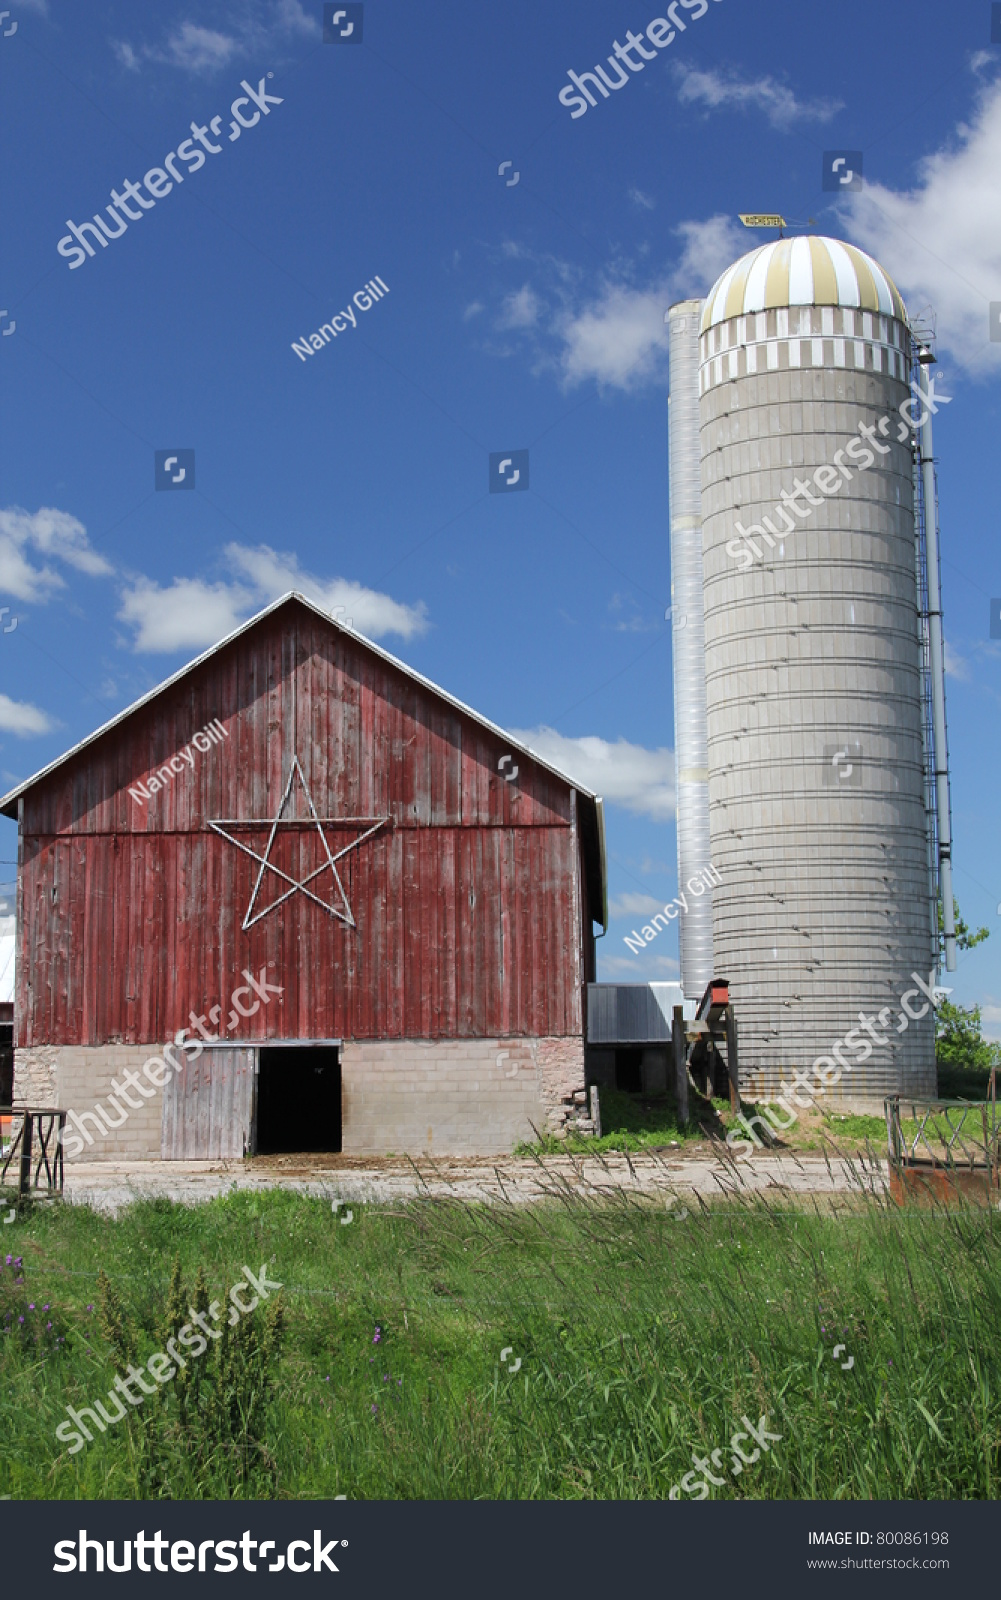 Cow on green pasture with red barn with grain silo royalty free stock - Old Red Barn With Silo